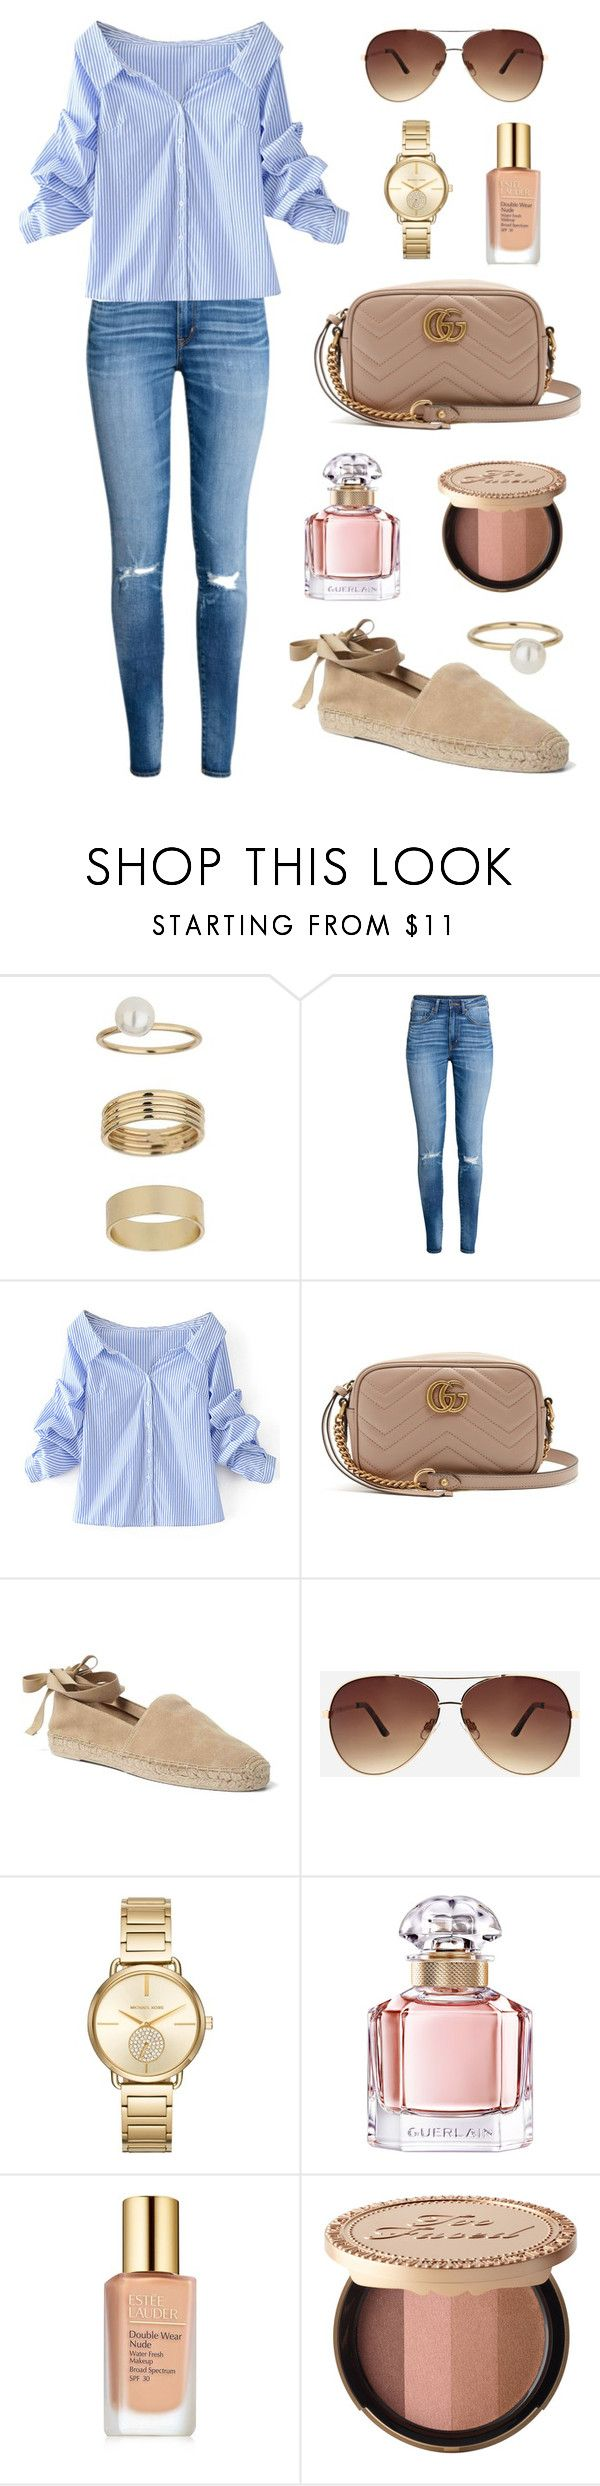 """The Blues"" by tasha-m-e ❤ liked on Polyvore featuring Miss Selfridge, WithChic, Gucci, Gap, Ashley Stewart, MICHAEL Michael Kors, Guerlain, Estée Lauder and Too Faced Cosmetics"